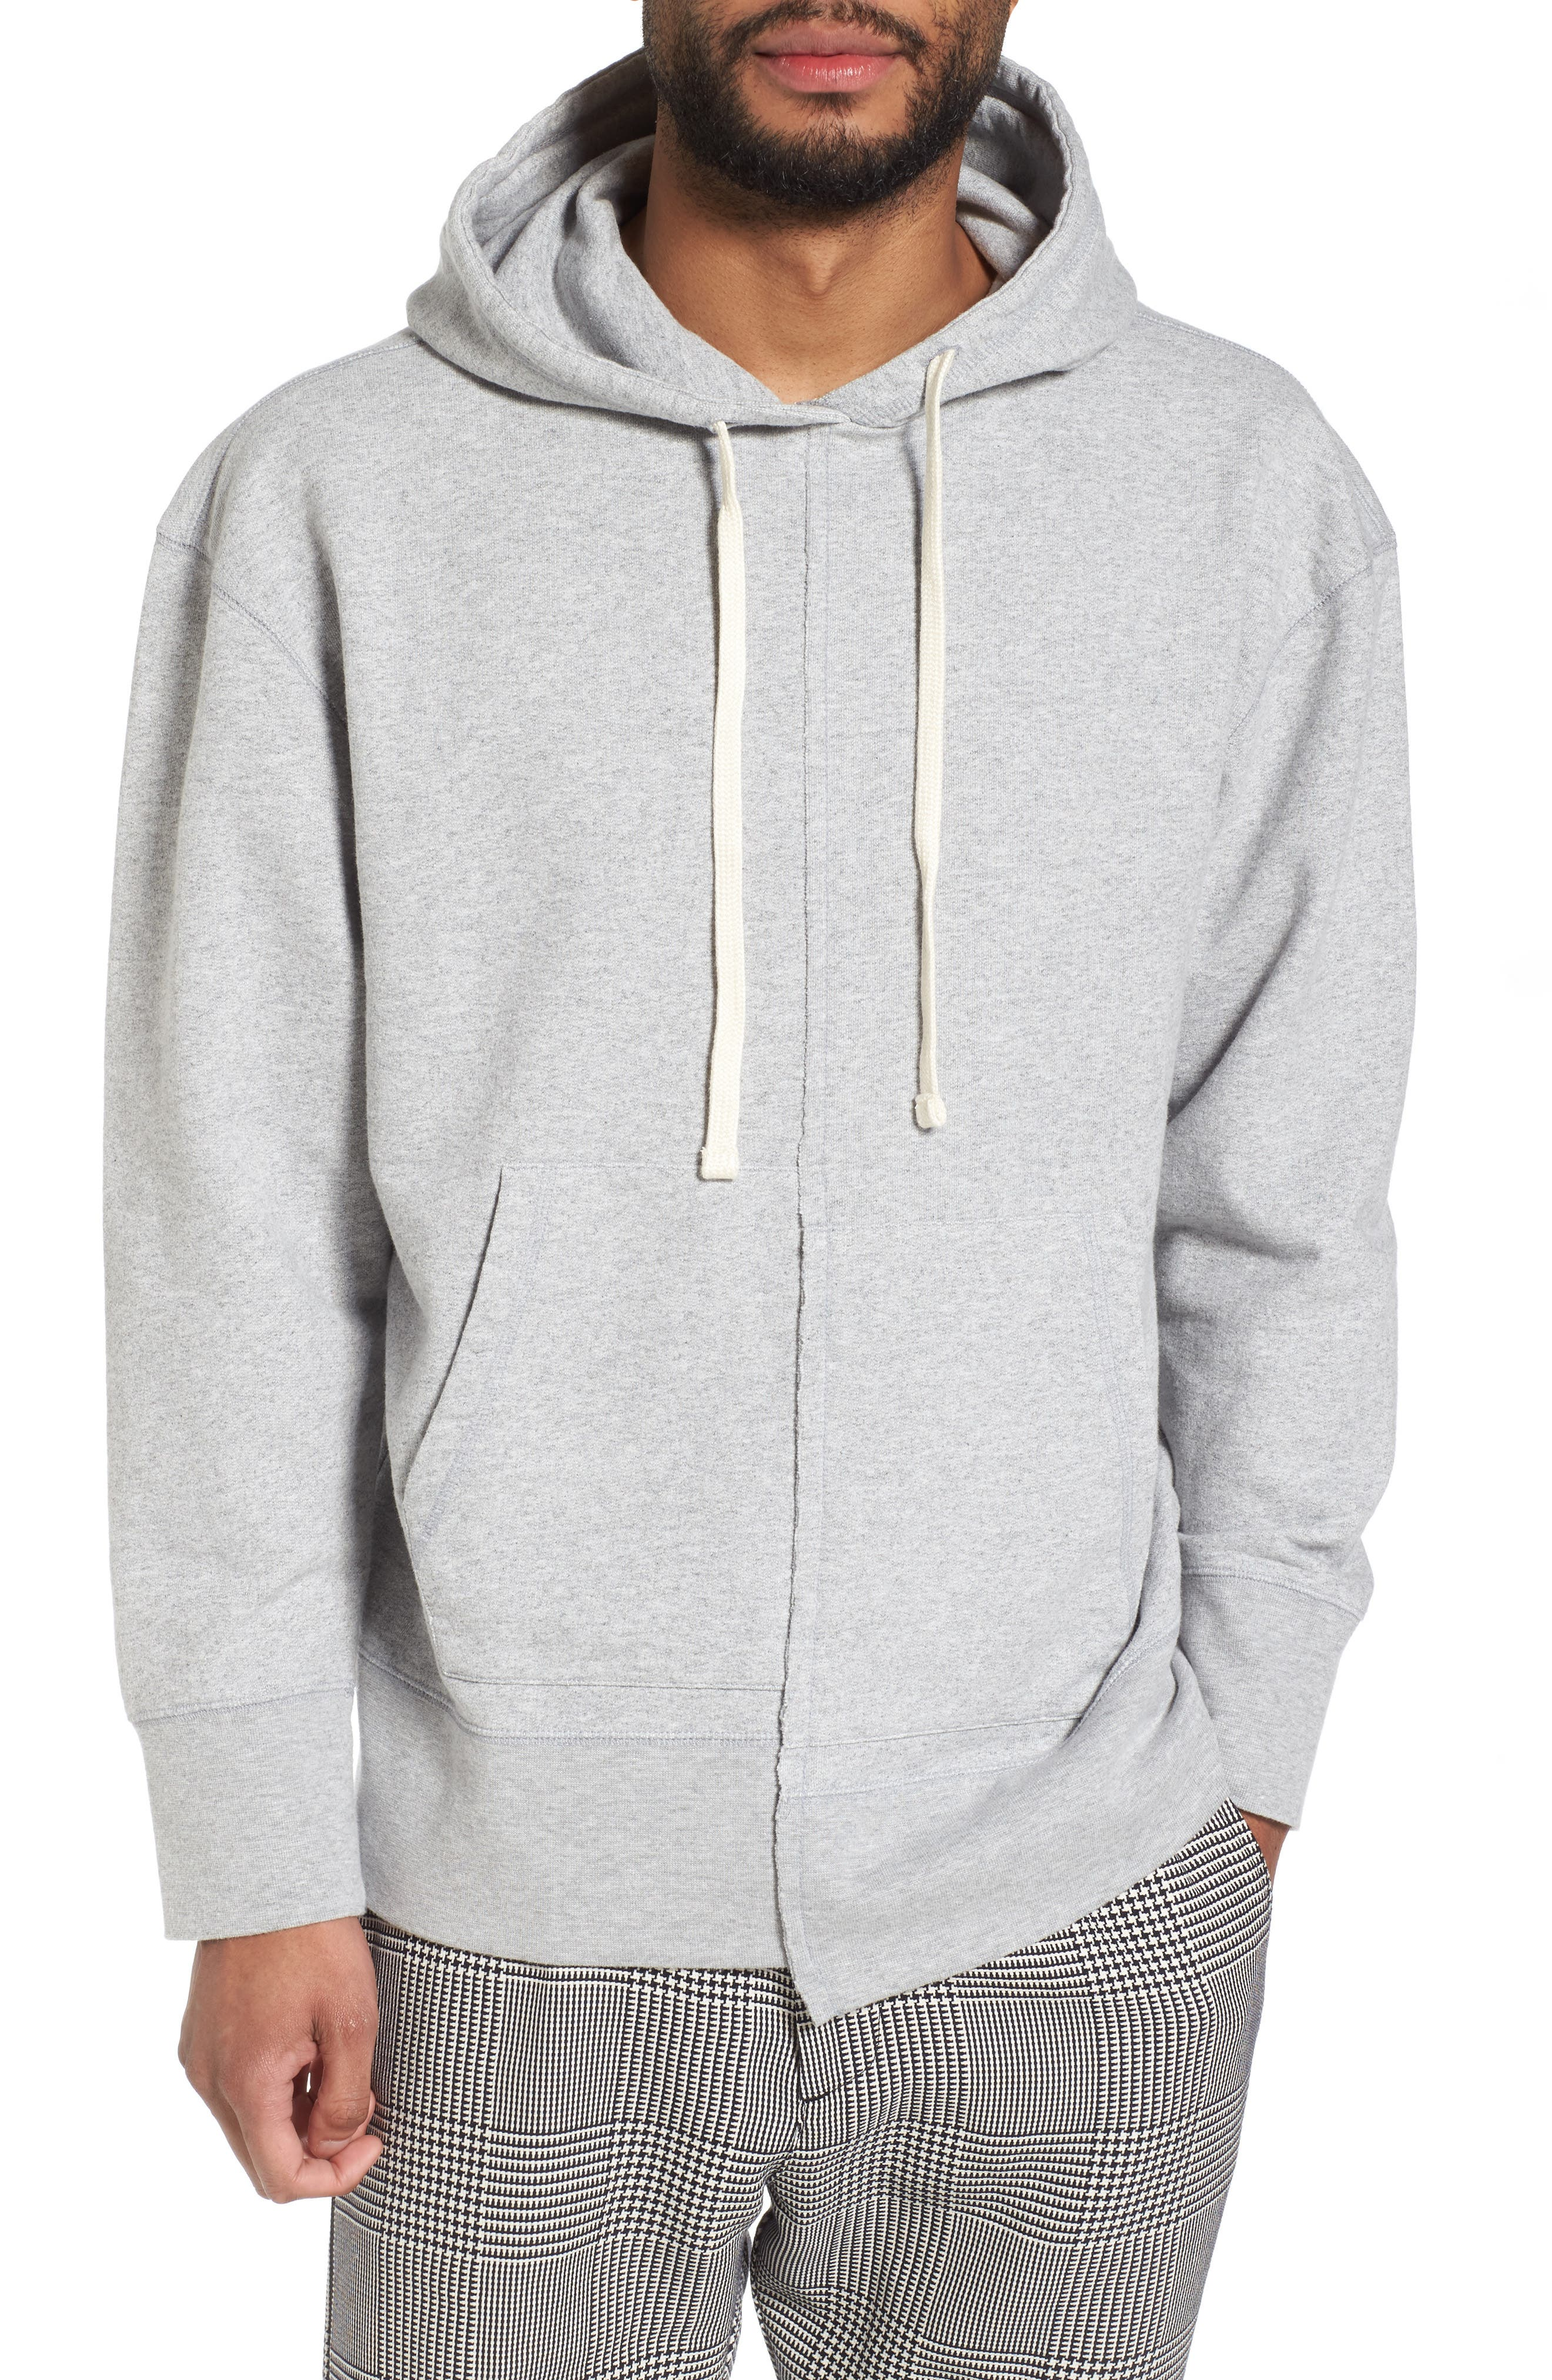 Spliced Hoodie,                             Main thumbnail 1, color,                             Grey Heather